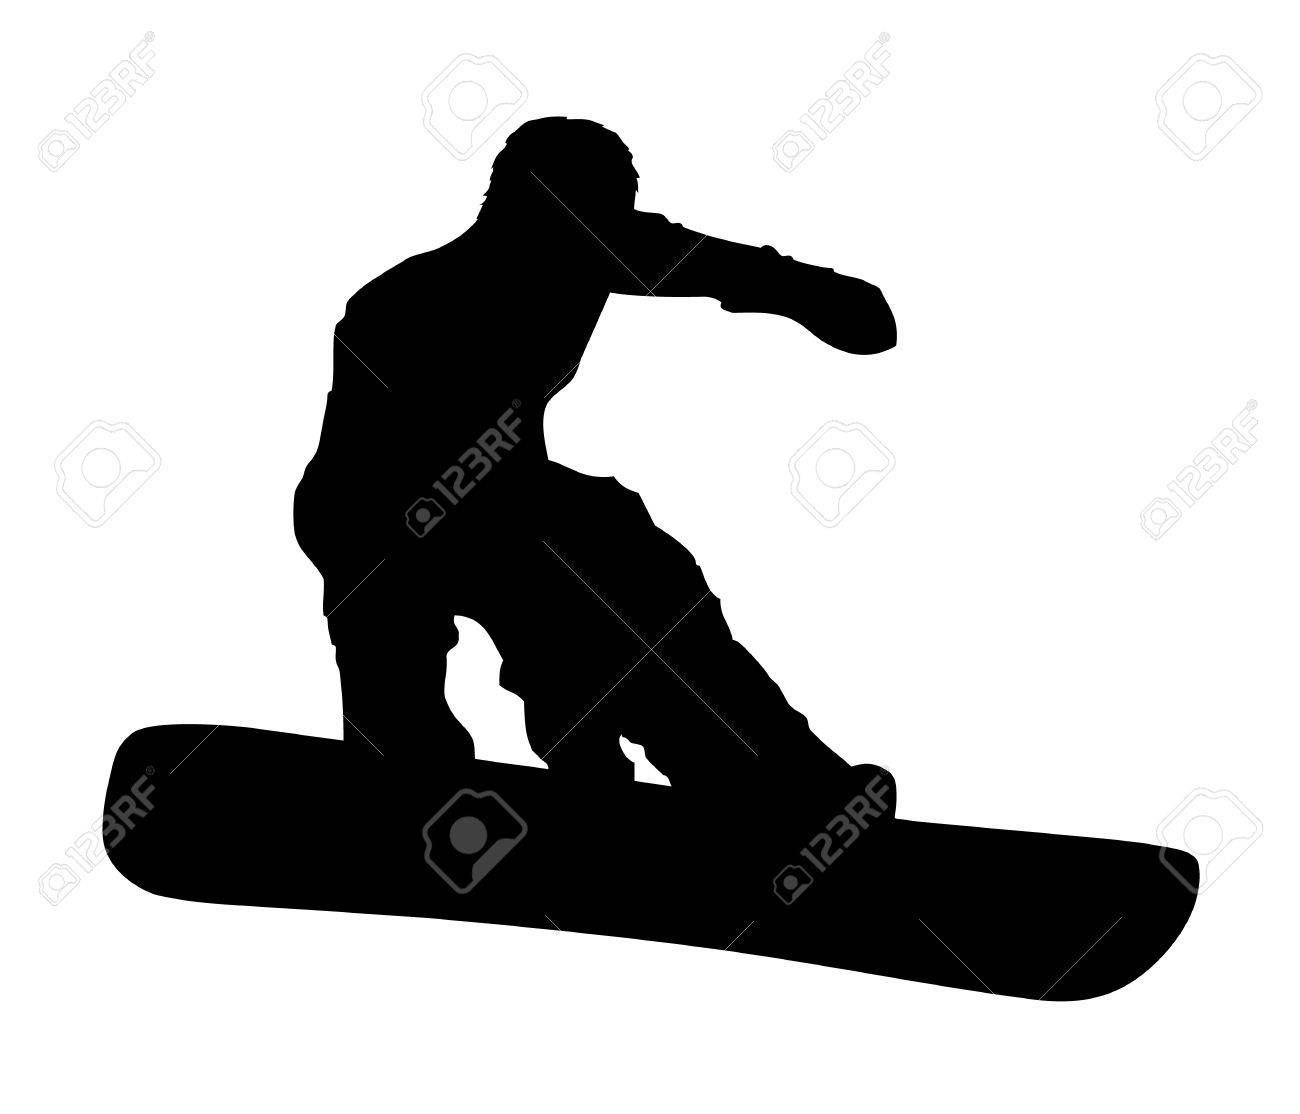 An abstract vector illustration of a snowboarder during a grab. Stock Vector - 11987361